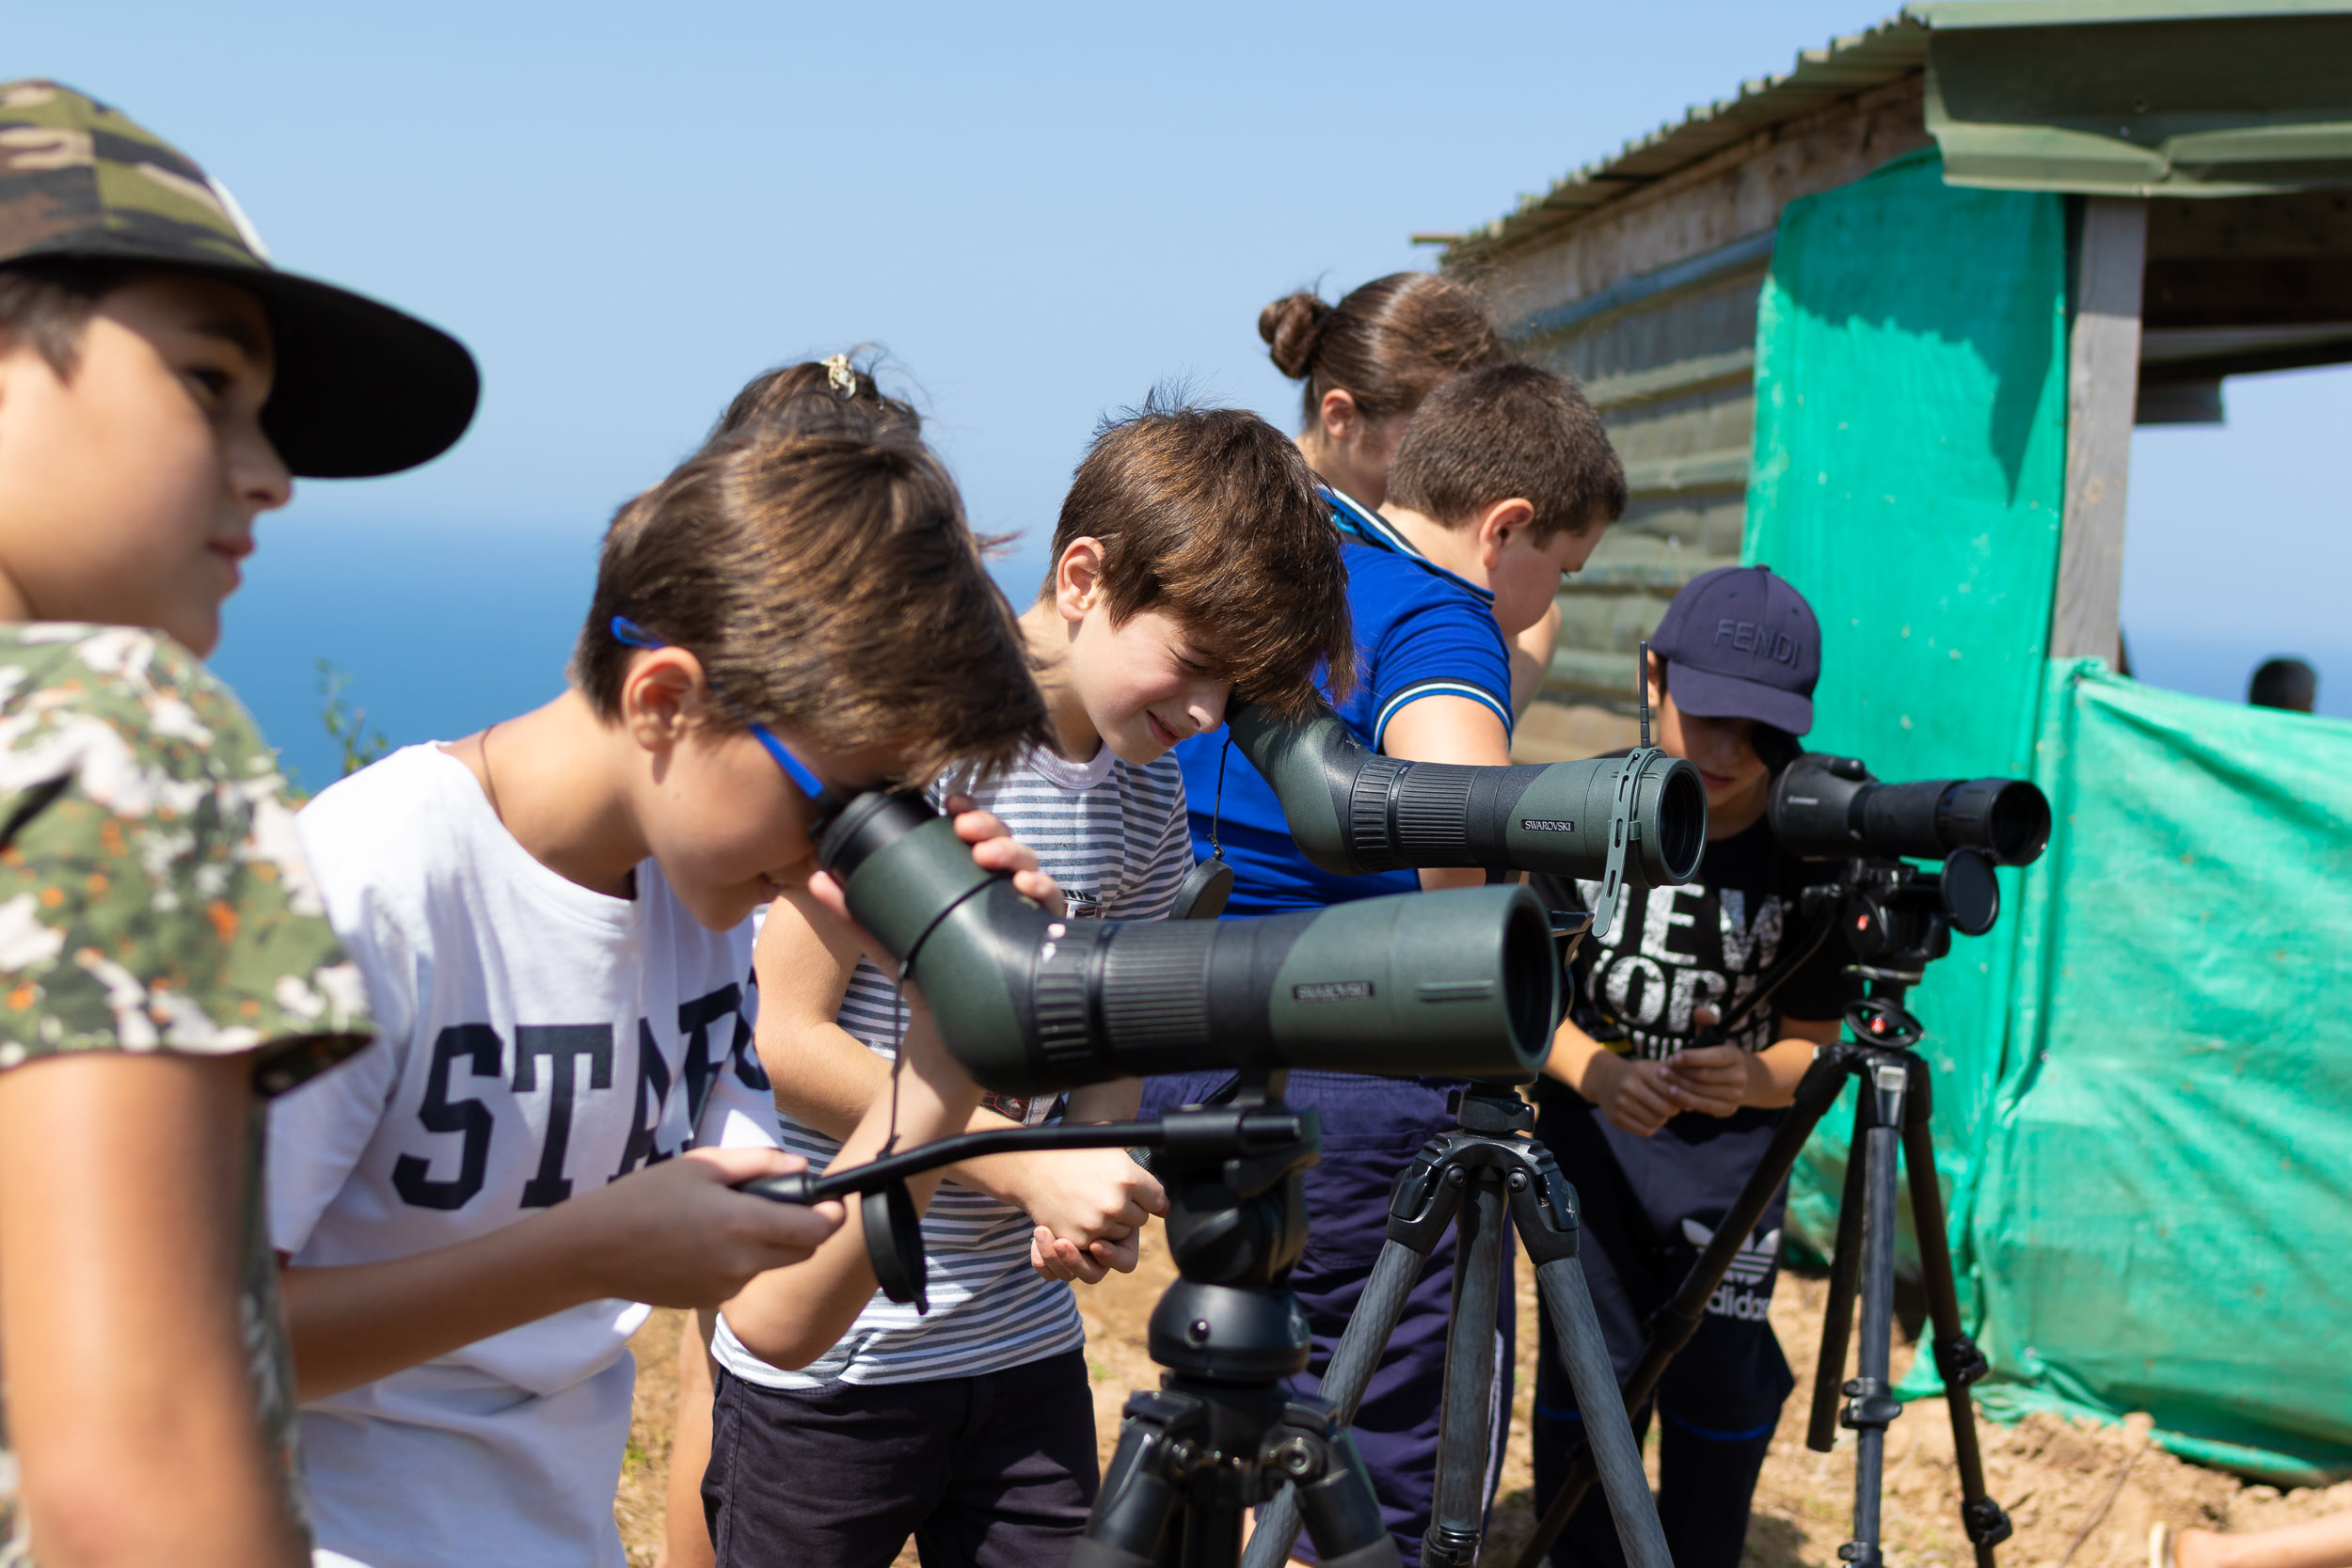 Children from local schools visit the stations and have their first peeks through binoculars and scopes. Photo by Bart Hoekstra.